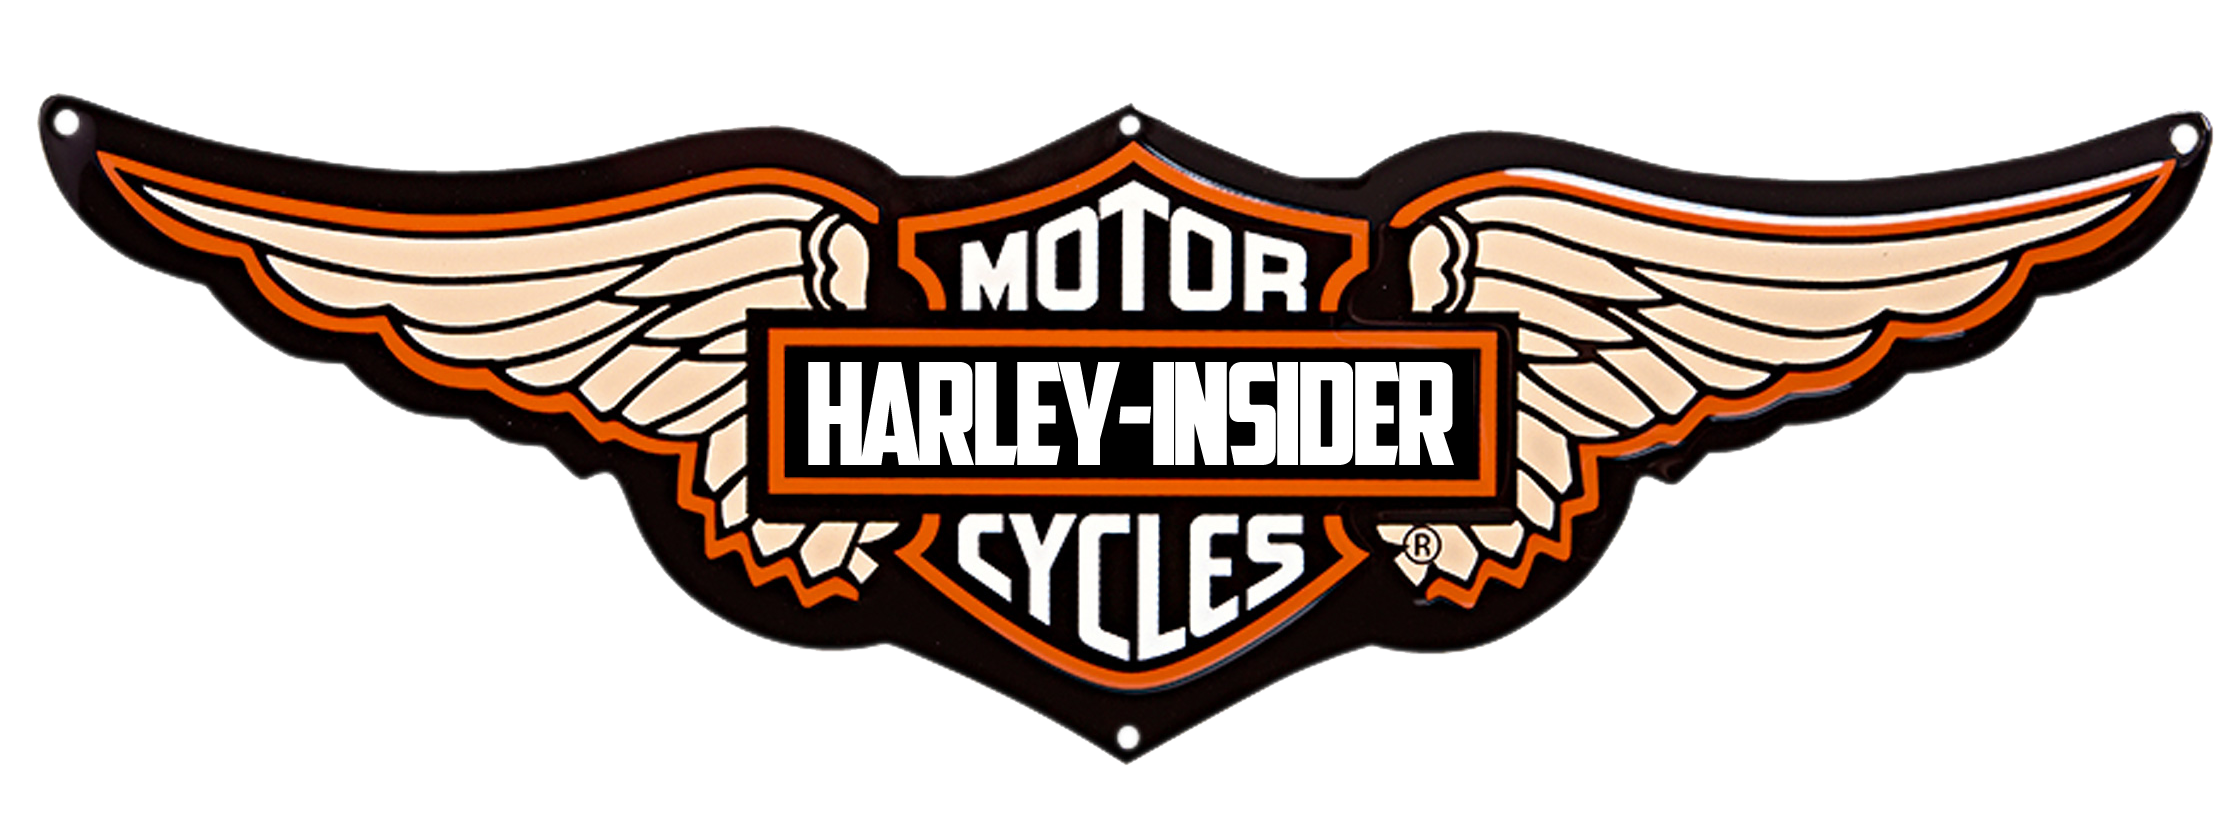 Chrome wings png. Harley davidson logo image